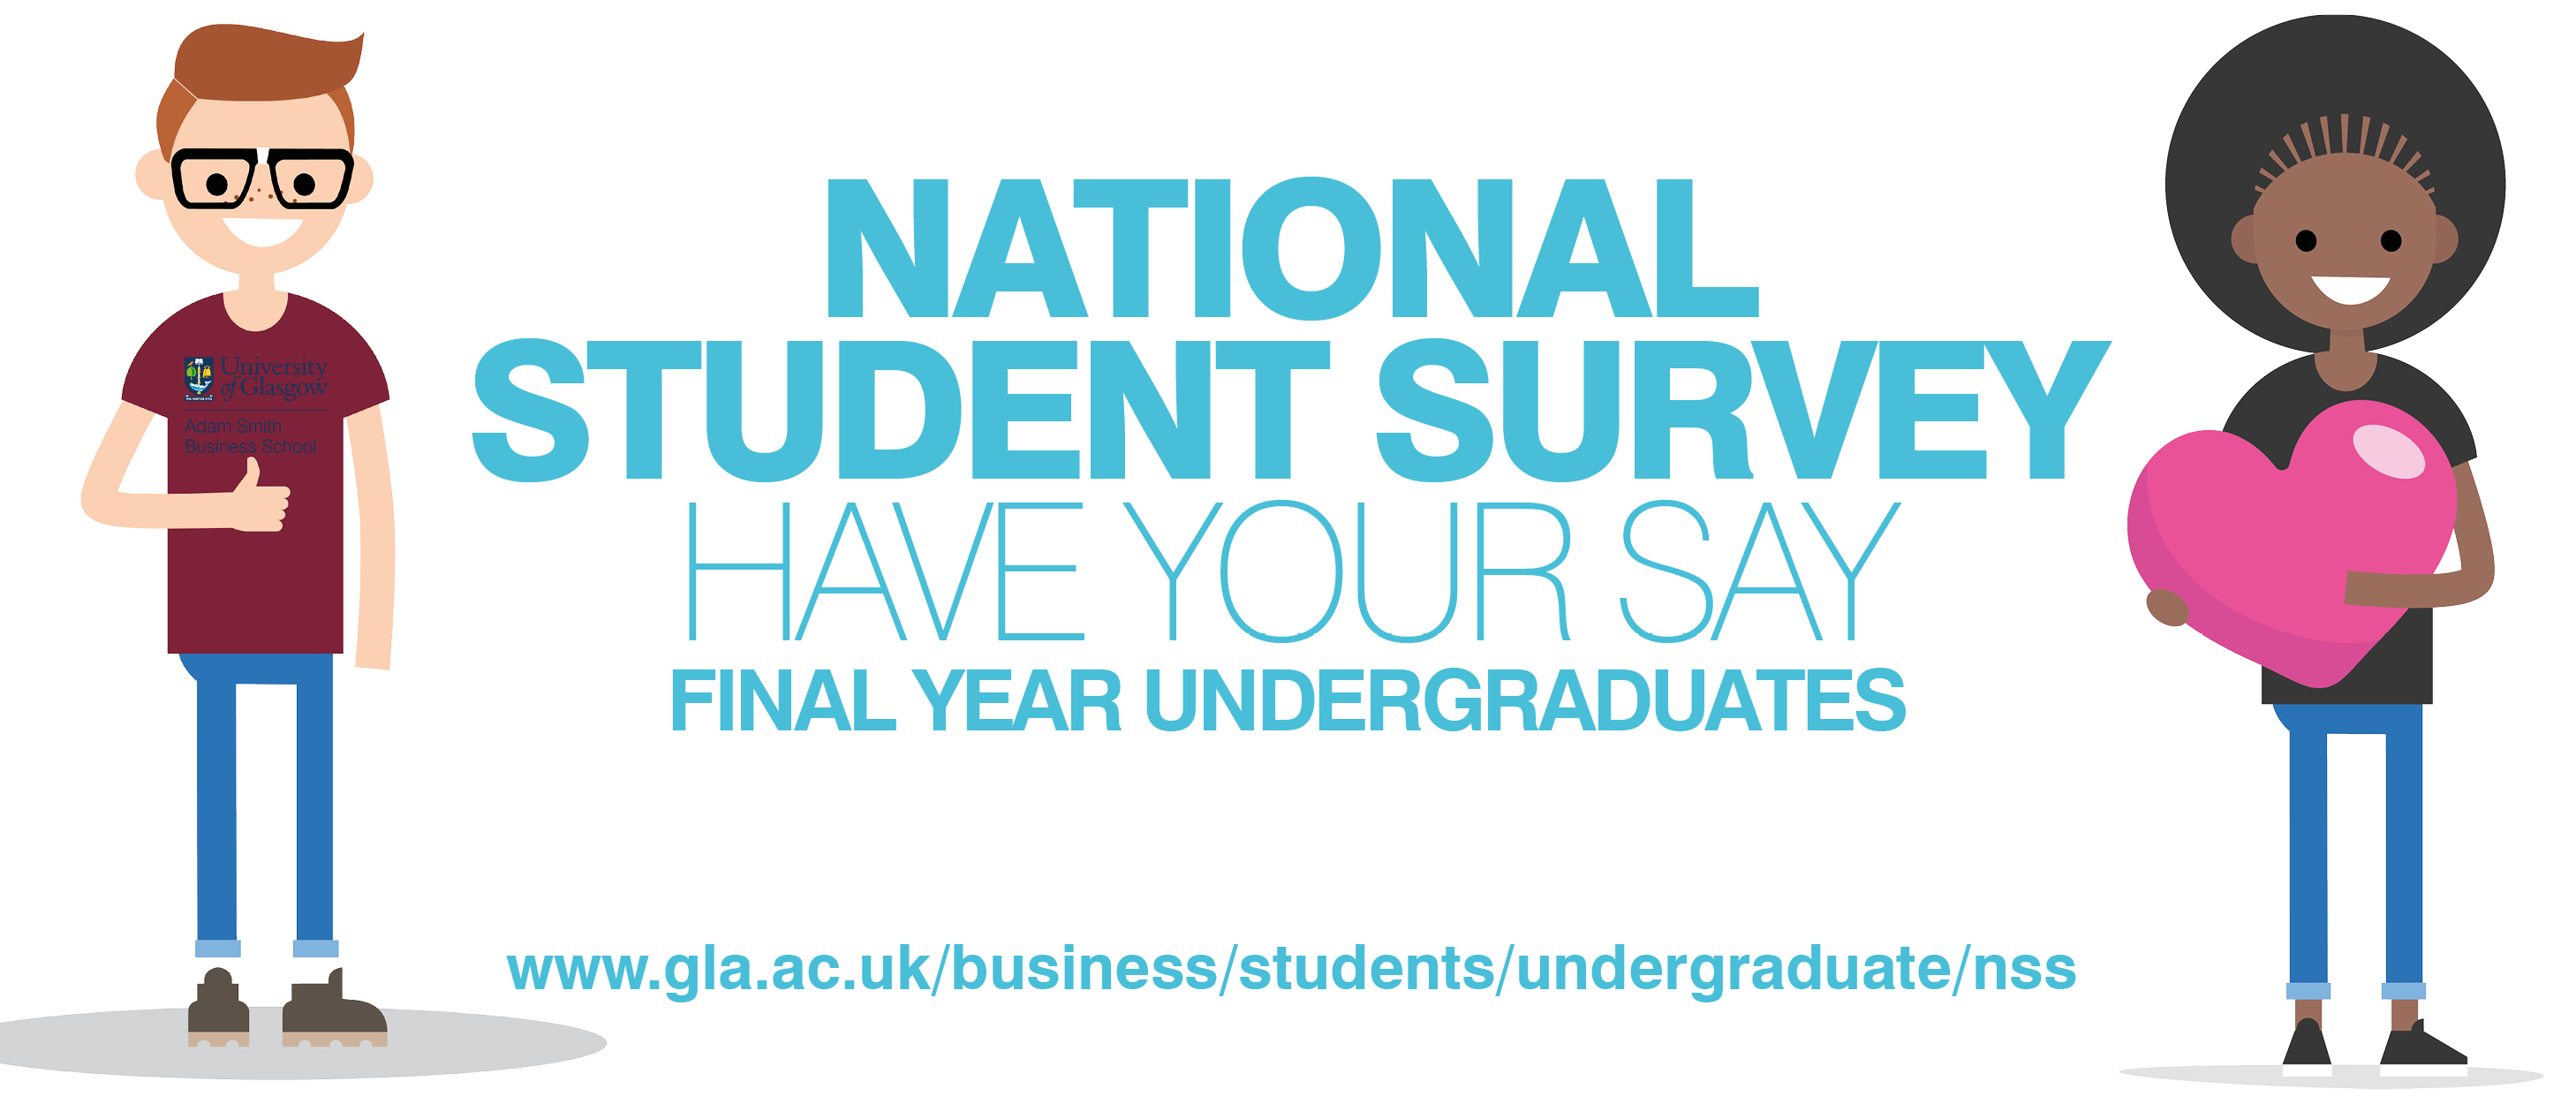 National Student Survey 2018